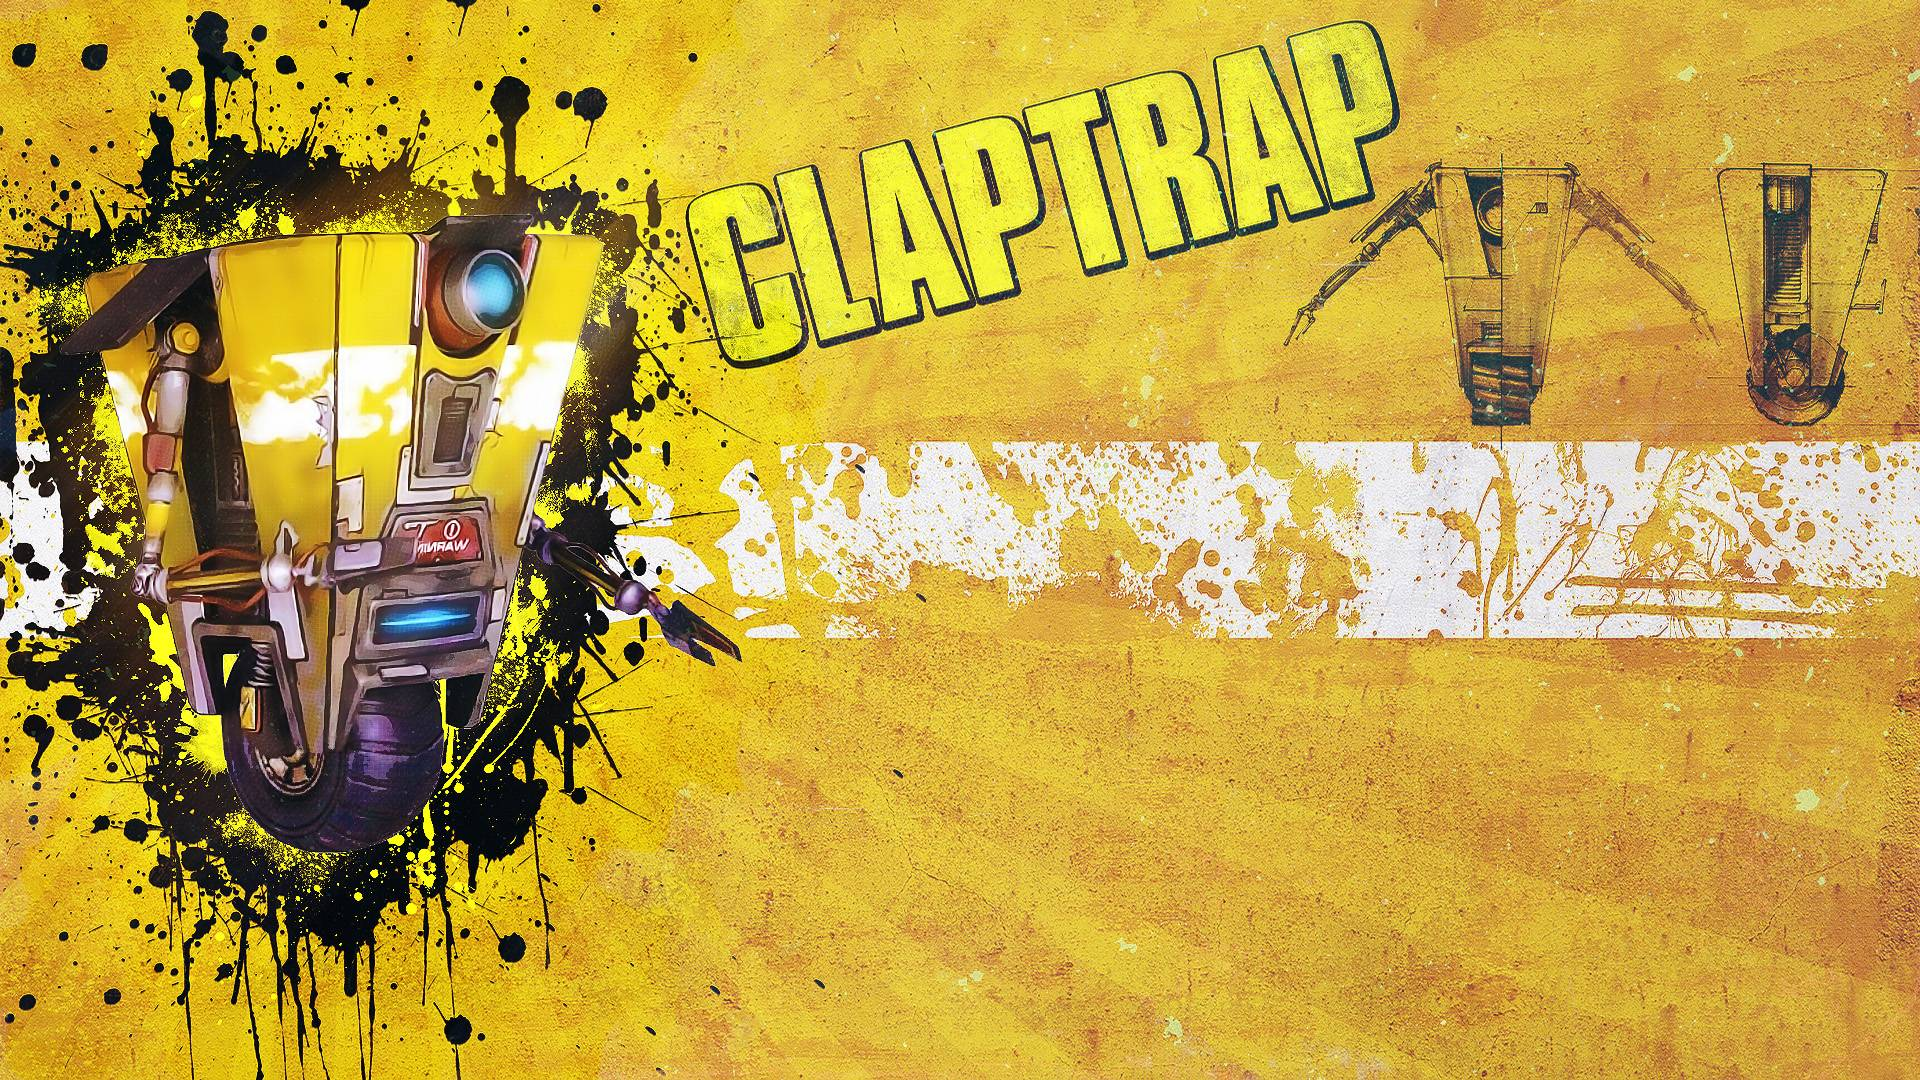 Claptrap wallpapers wallpaper cave images for claptrap wallpaper voltagebd Image collections